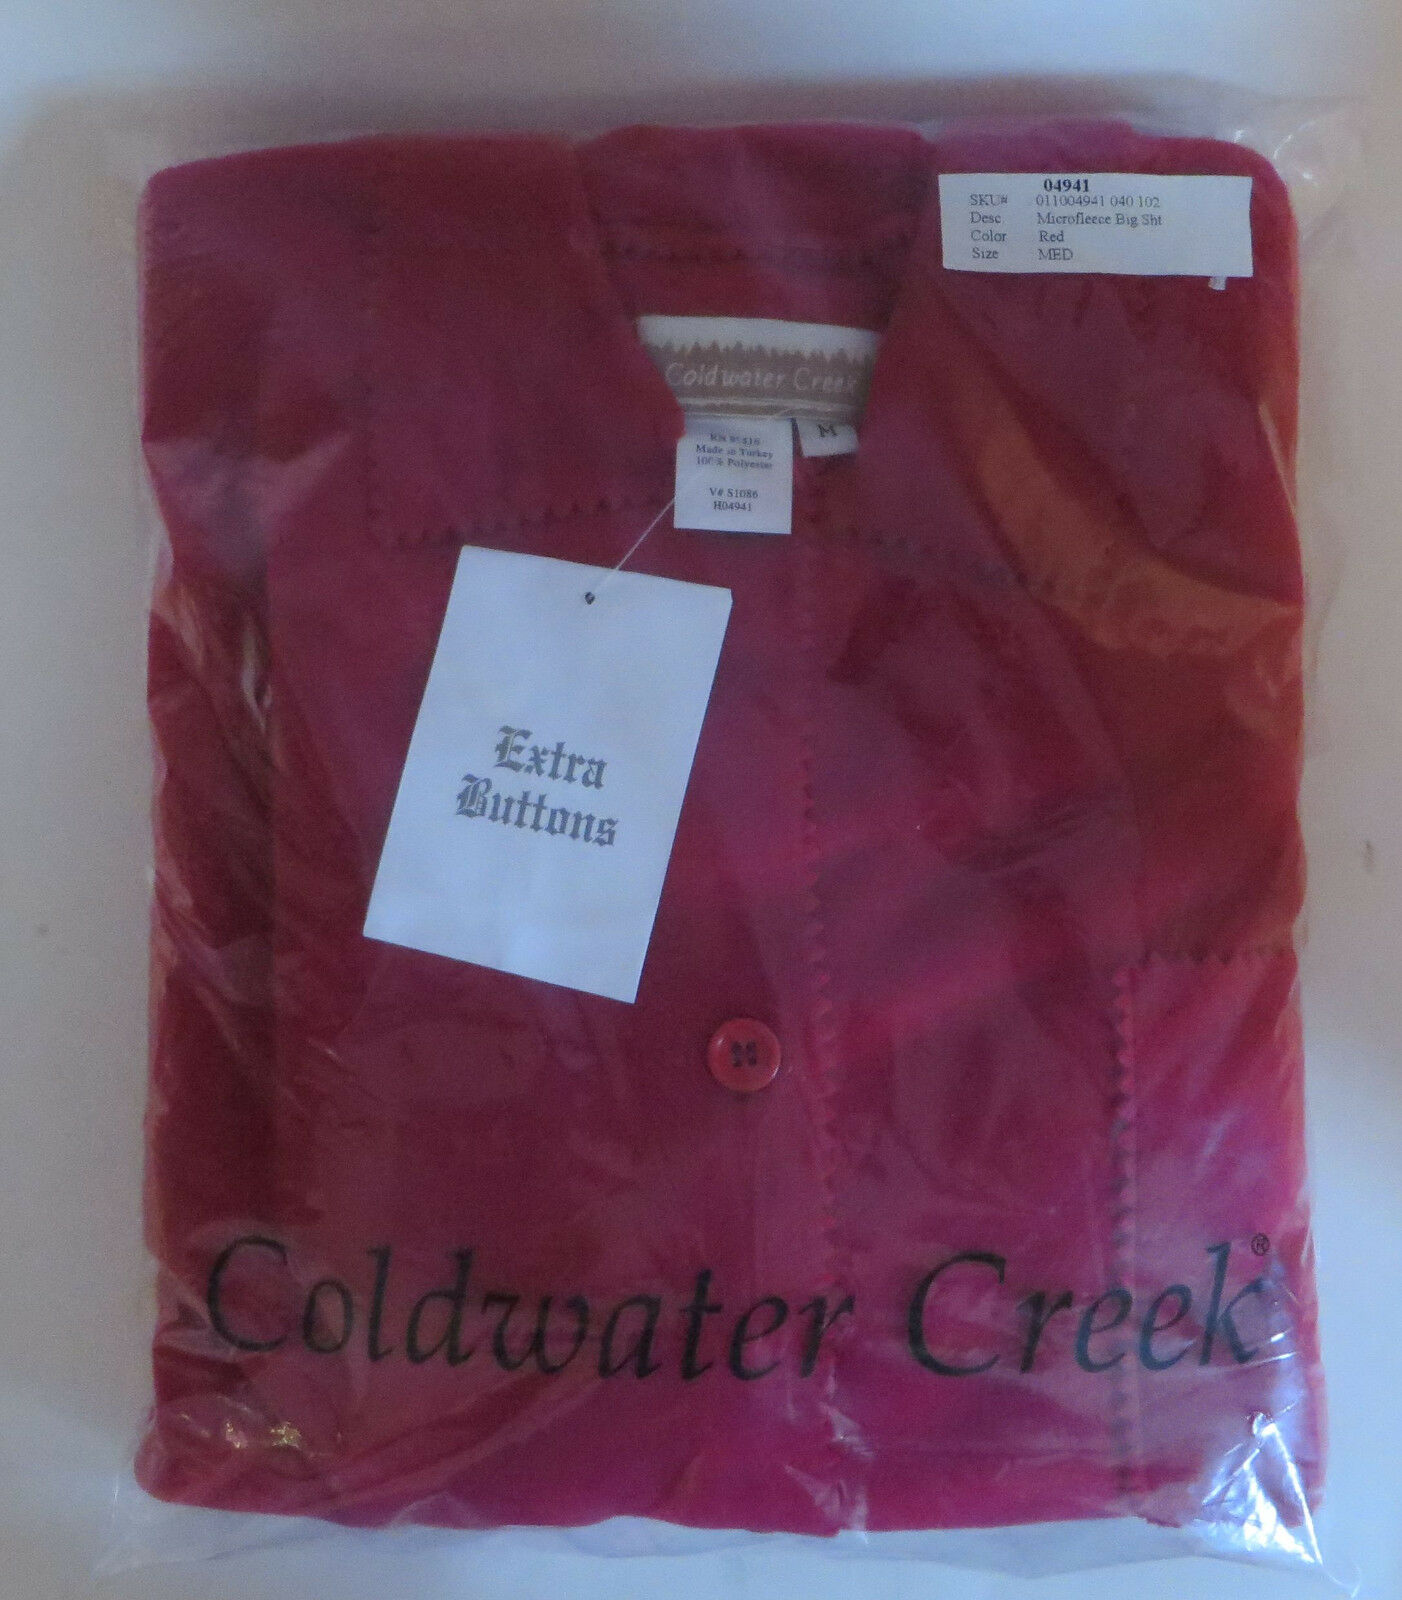 New Coldwater Creek Red Micro Fleece Shirt Pinking Shears Cut Size Med